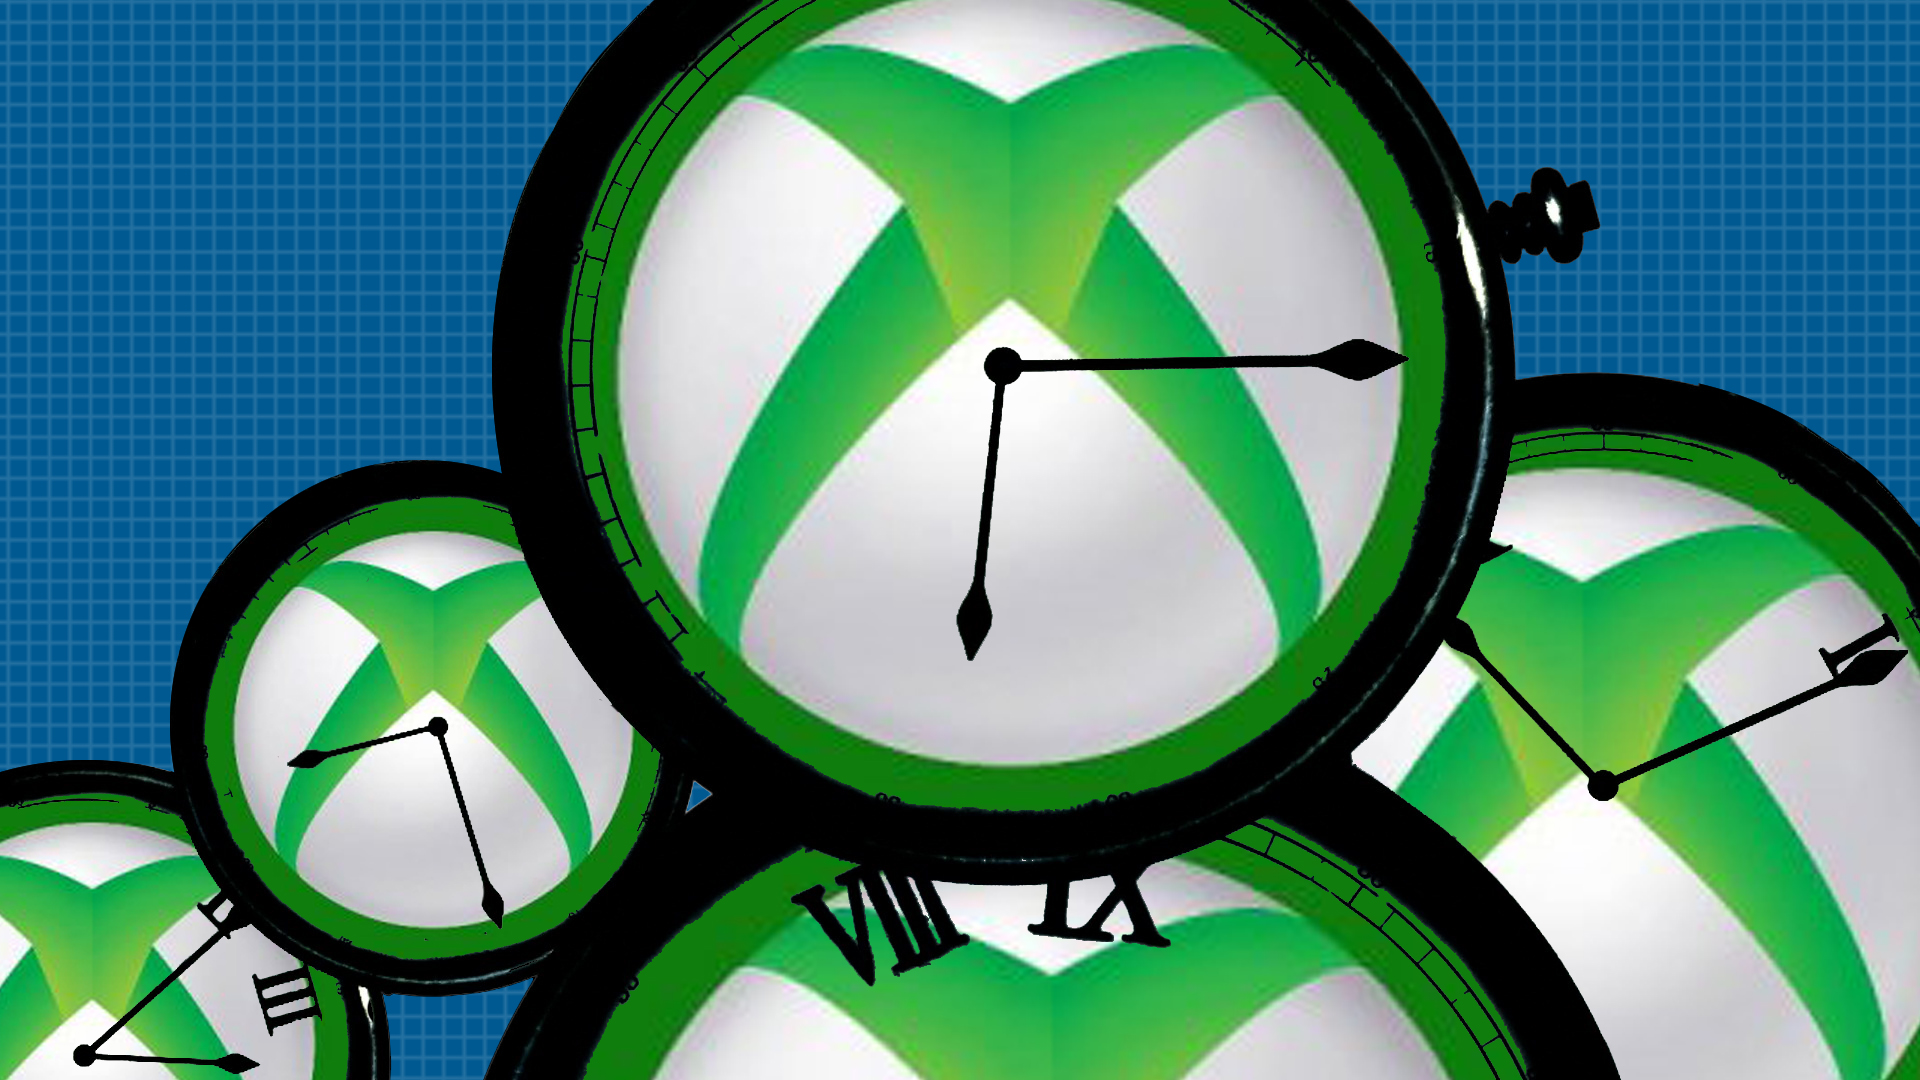 ID@Xbox games will now release at 12:00 am UTC